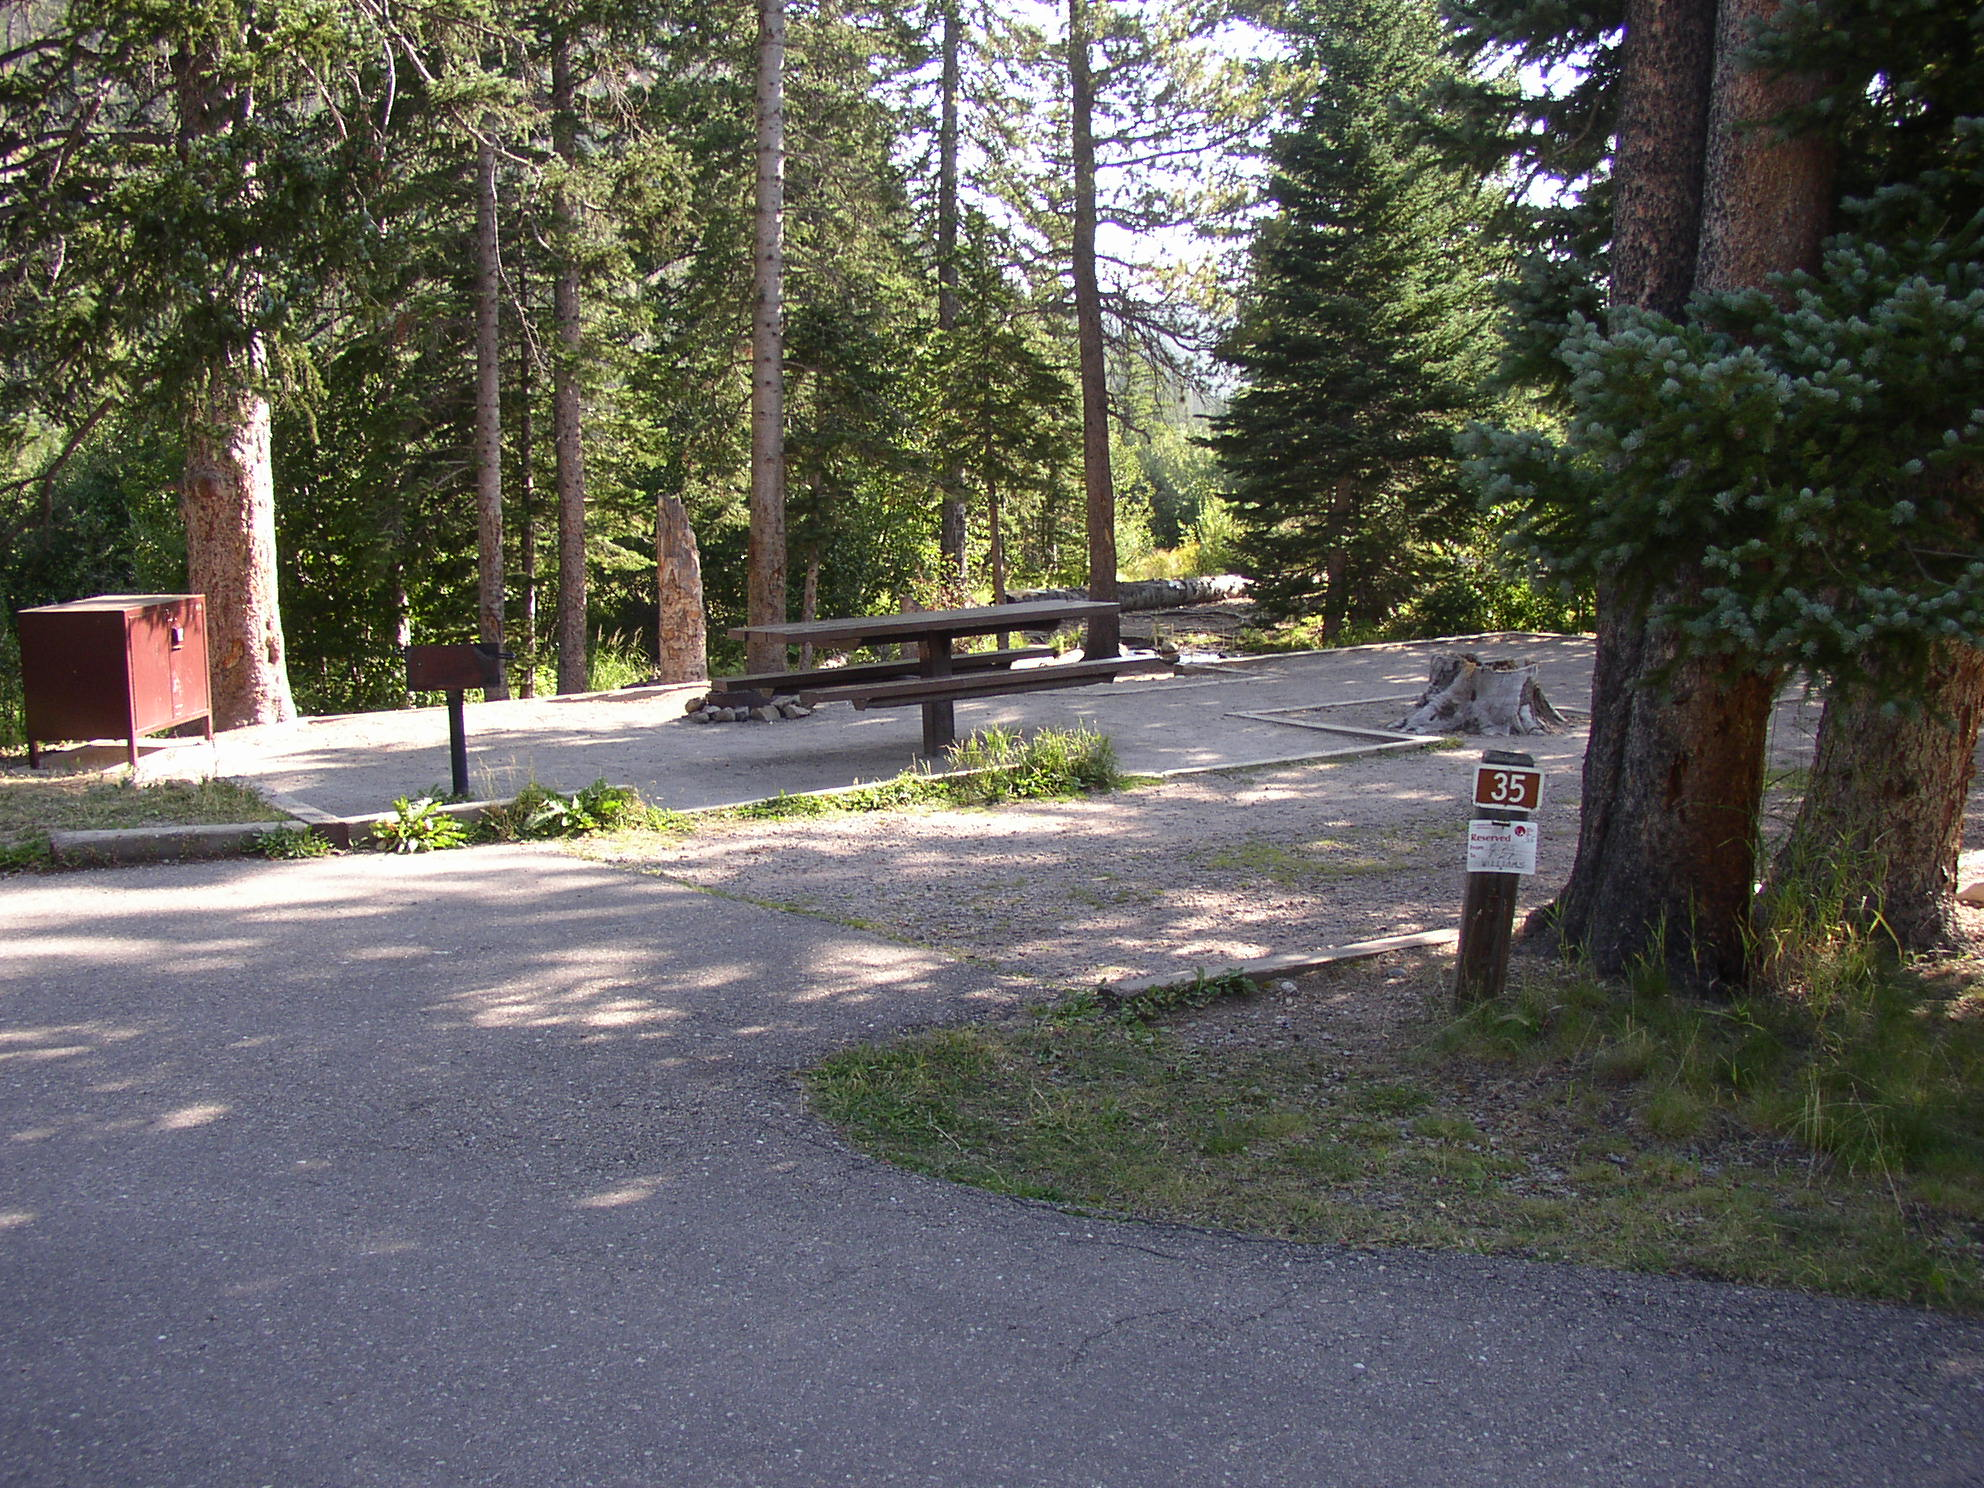 Some campsites are reservable